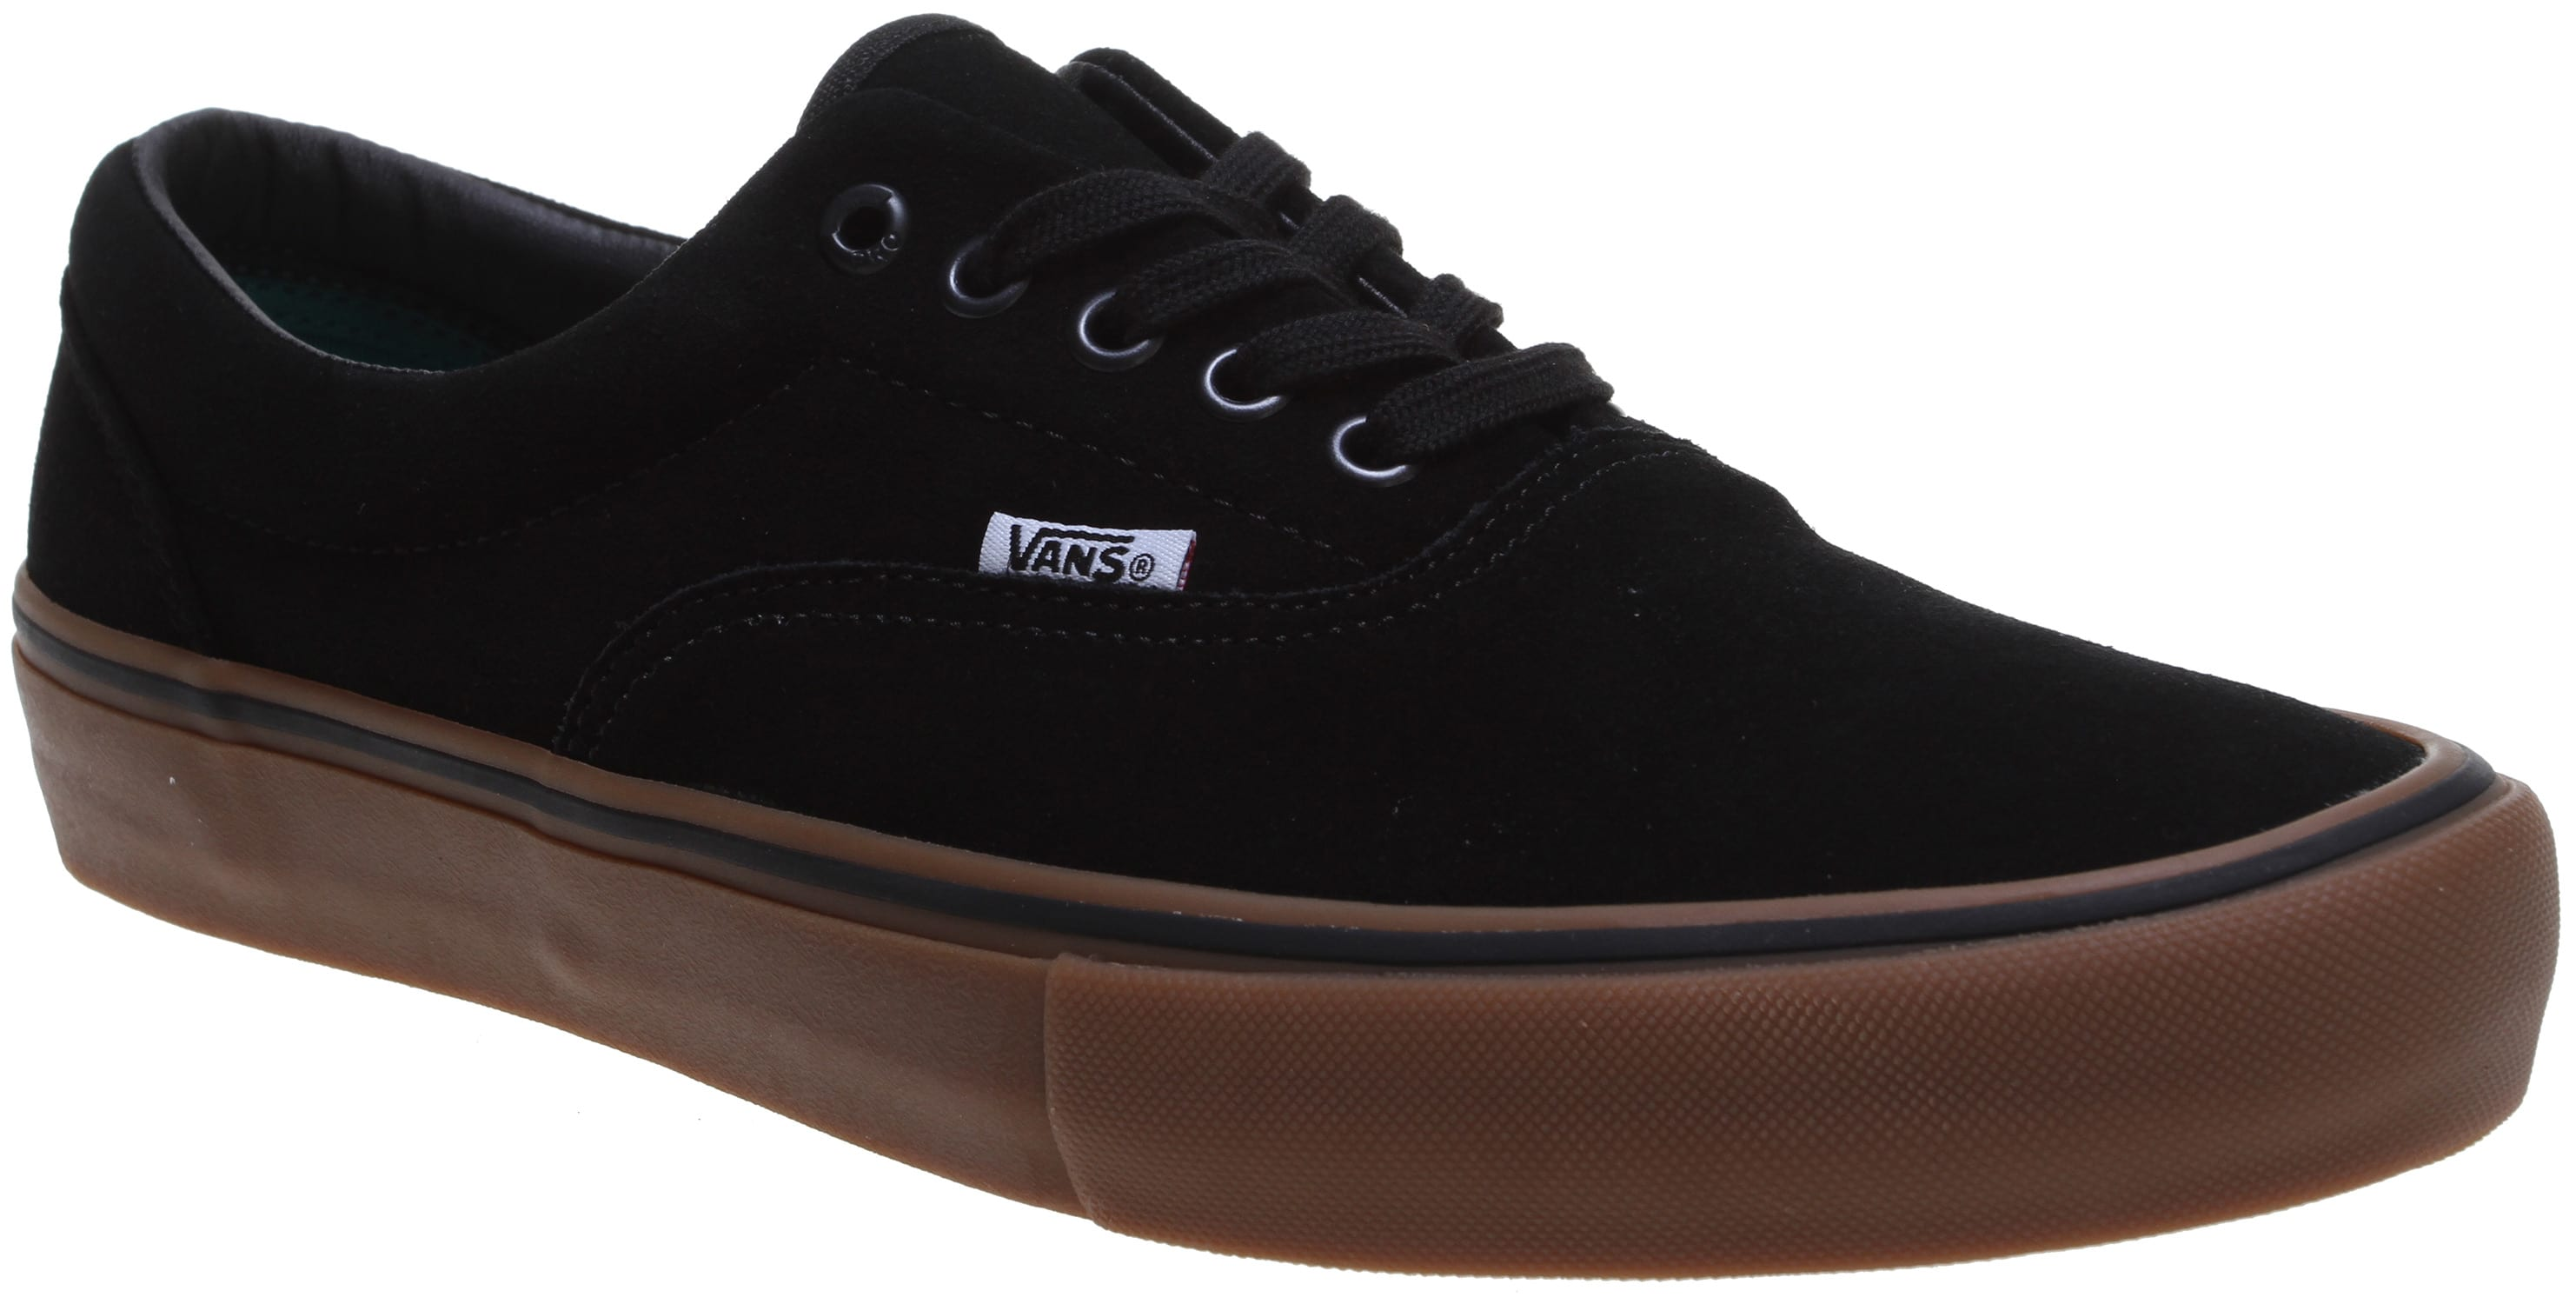 Vans Era Pro Skate Shoes - thumbnail 2 09821a1cde1b